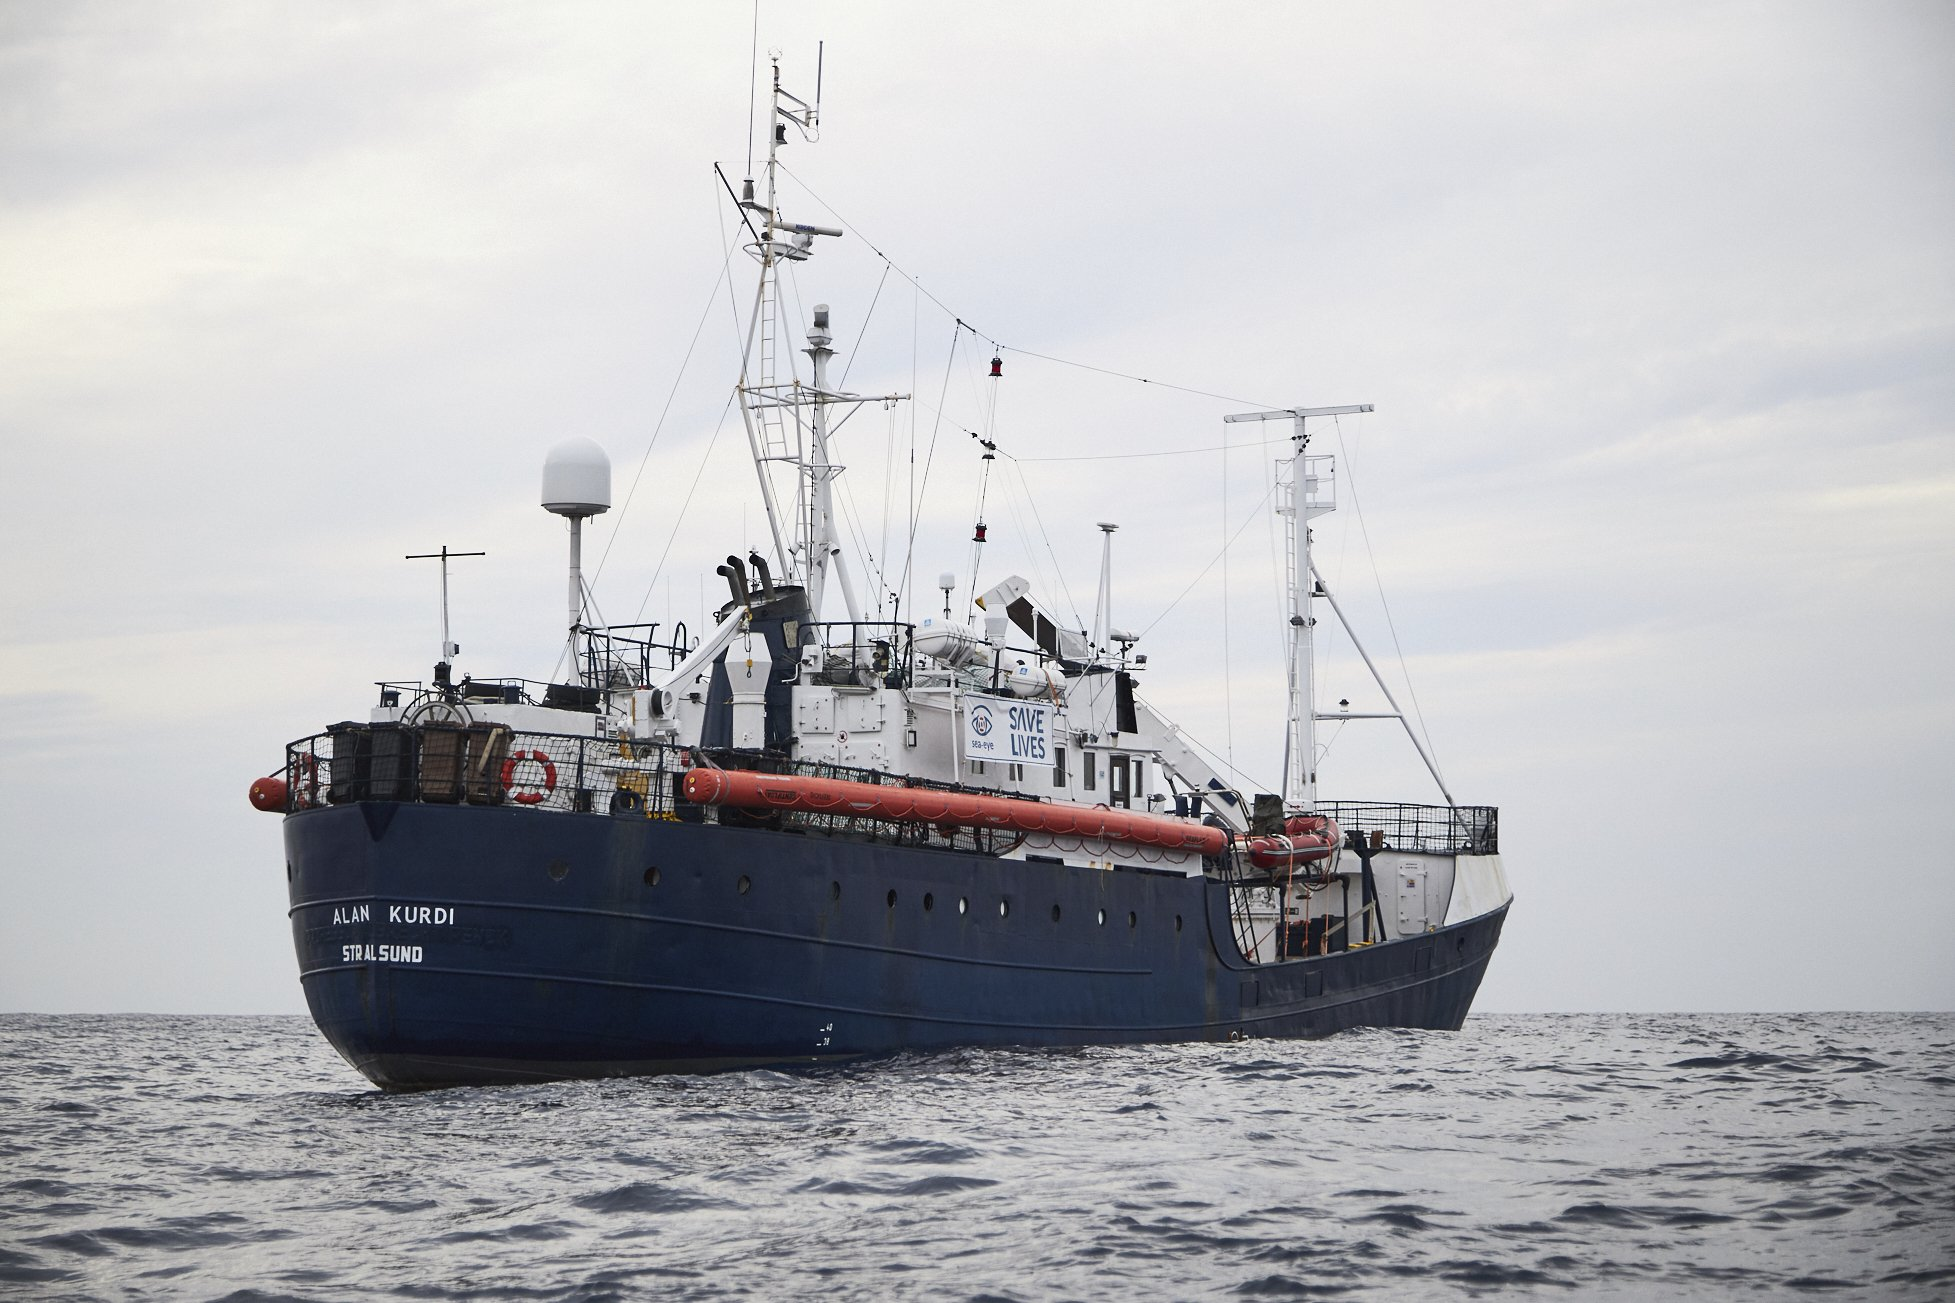 Migrant rescue ship low on supplies in Mediterranean